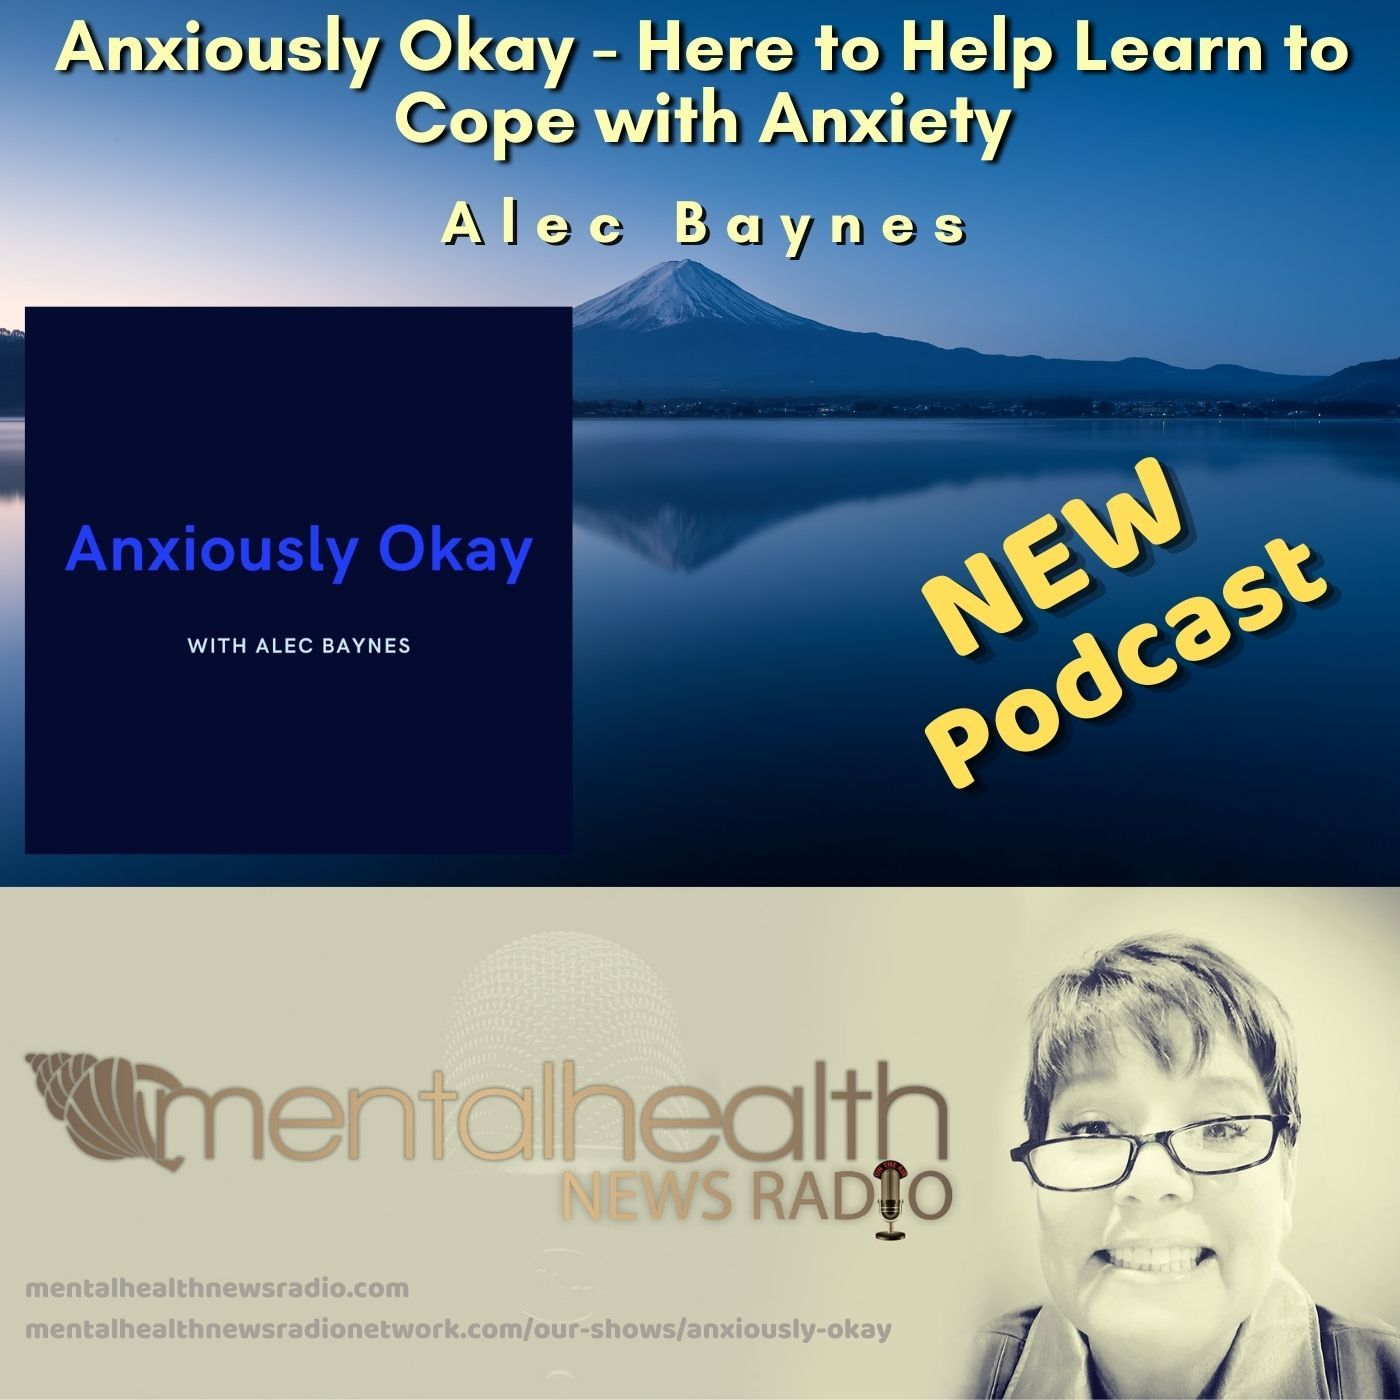 Mental Health News Radio - Anxiously Okay with Alec Baynes - Here to Help Learn to Cope with Anxiety